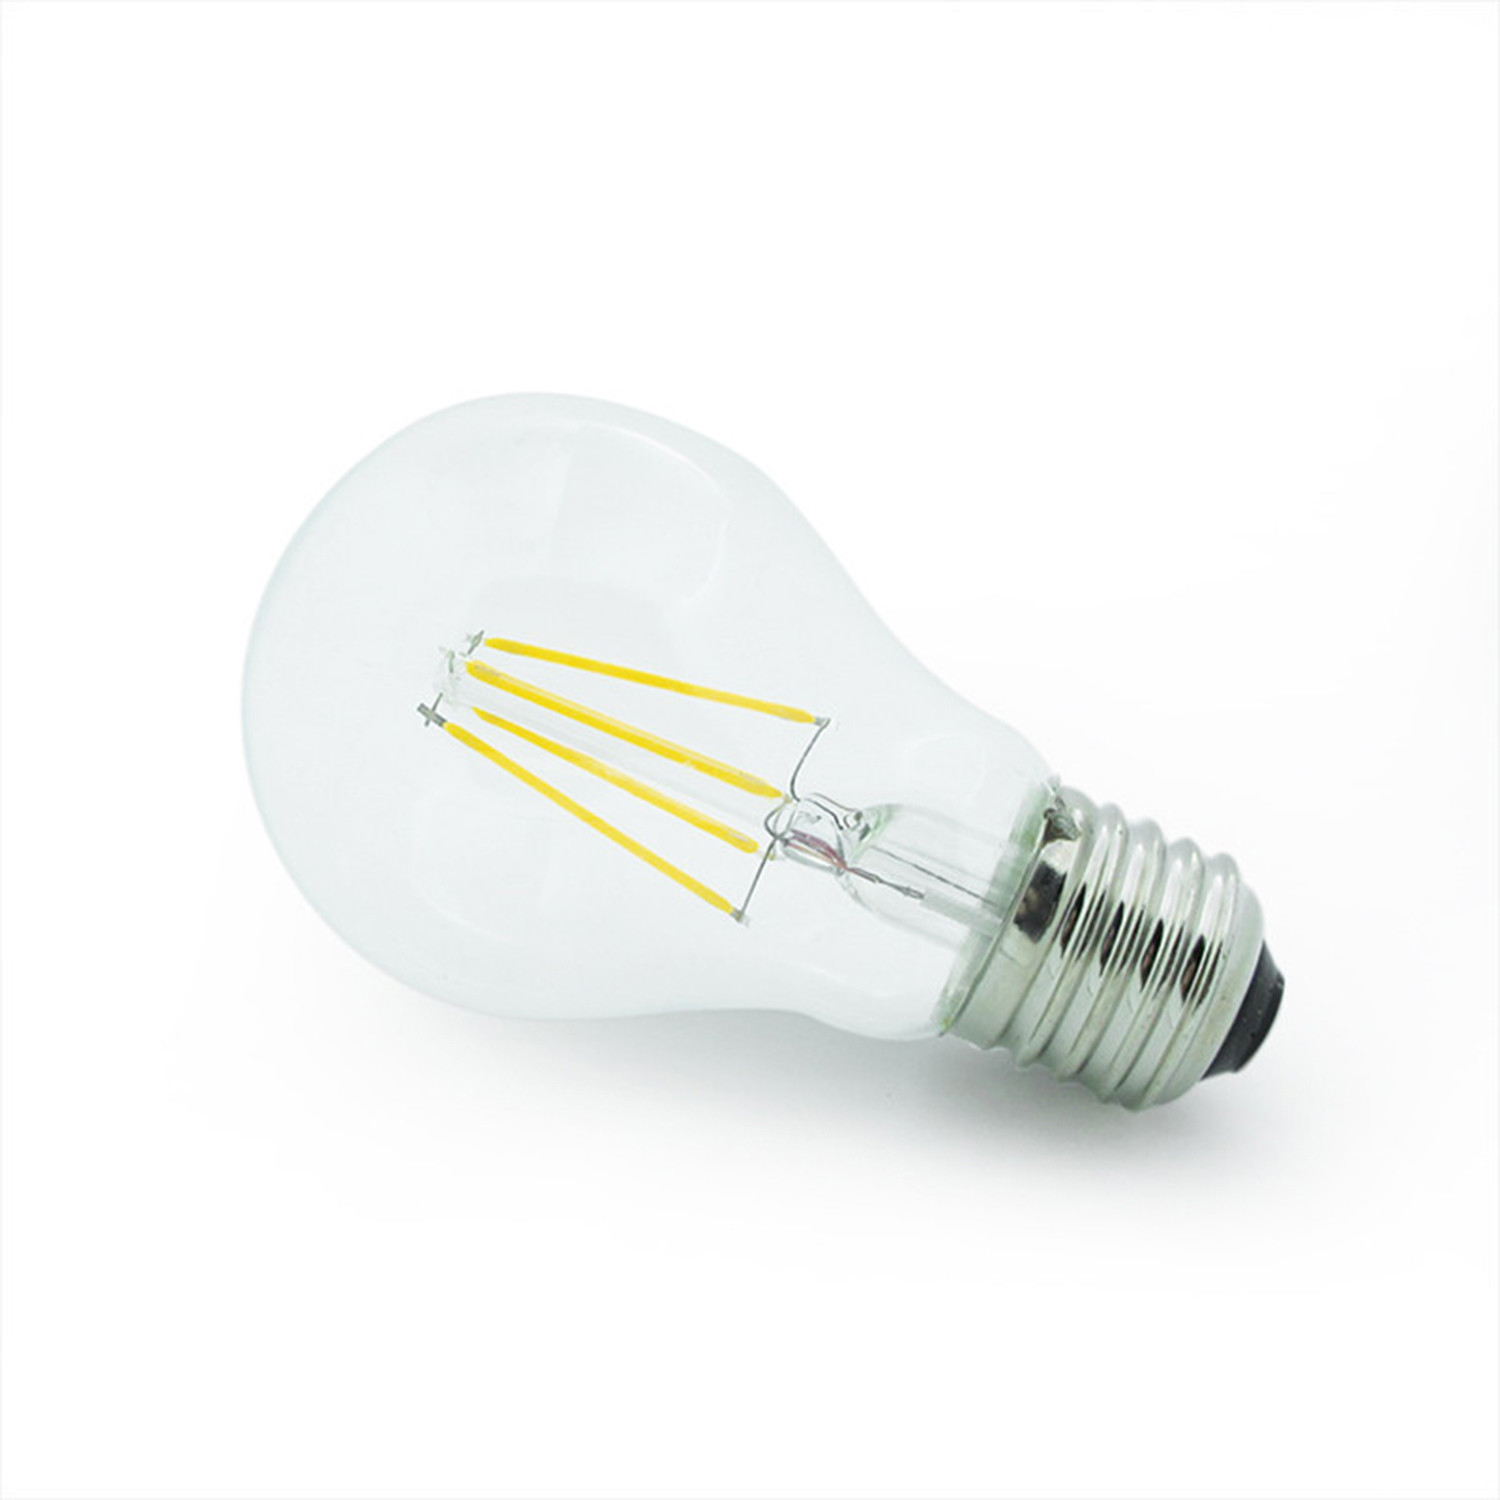 E27 3w Led Small Edison Globe Light Bulb Type G Lightwithshade Touch Of Modern